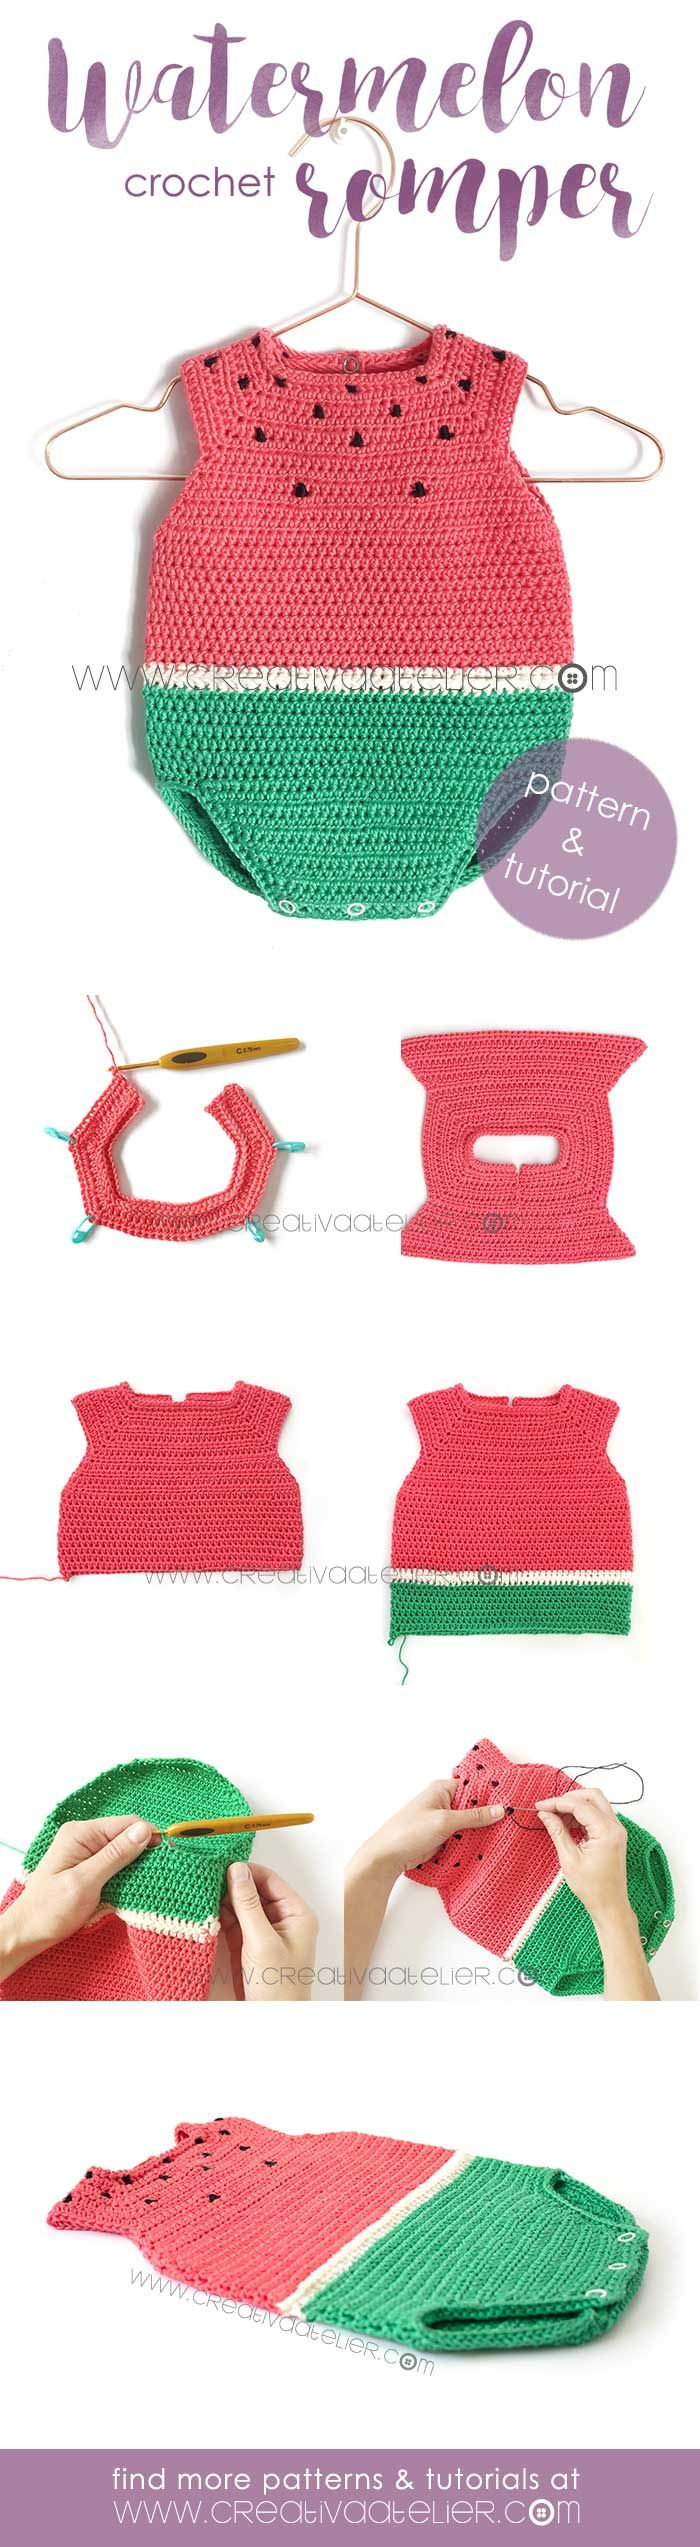 Watermelon Crochet Romper 🍉 Pattern & Tutorial